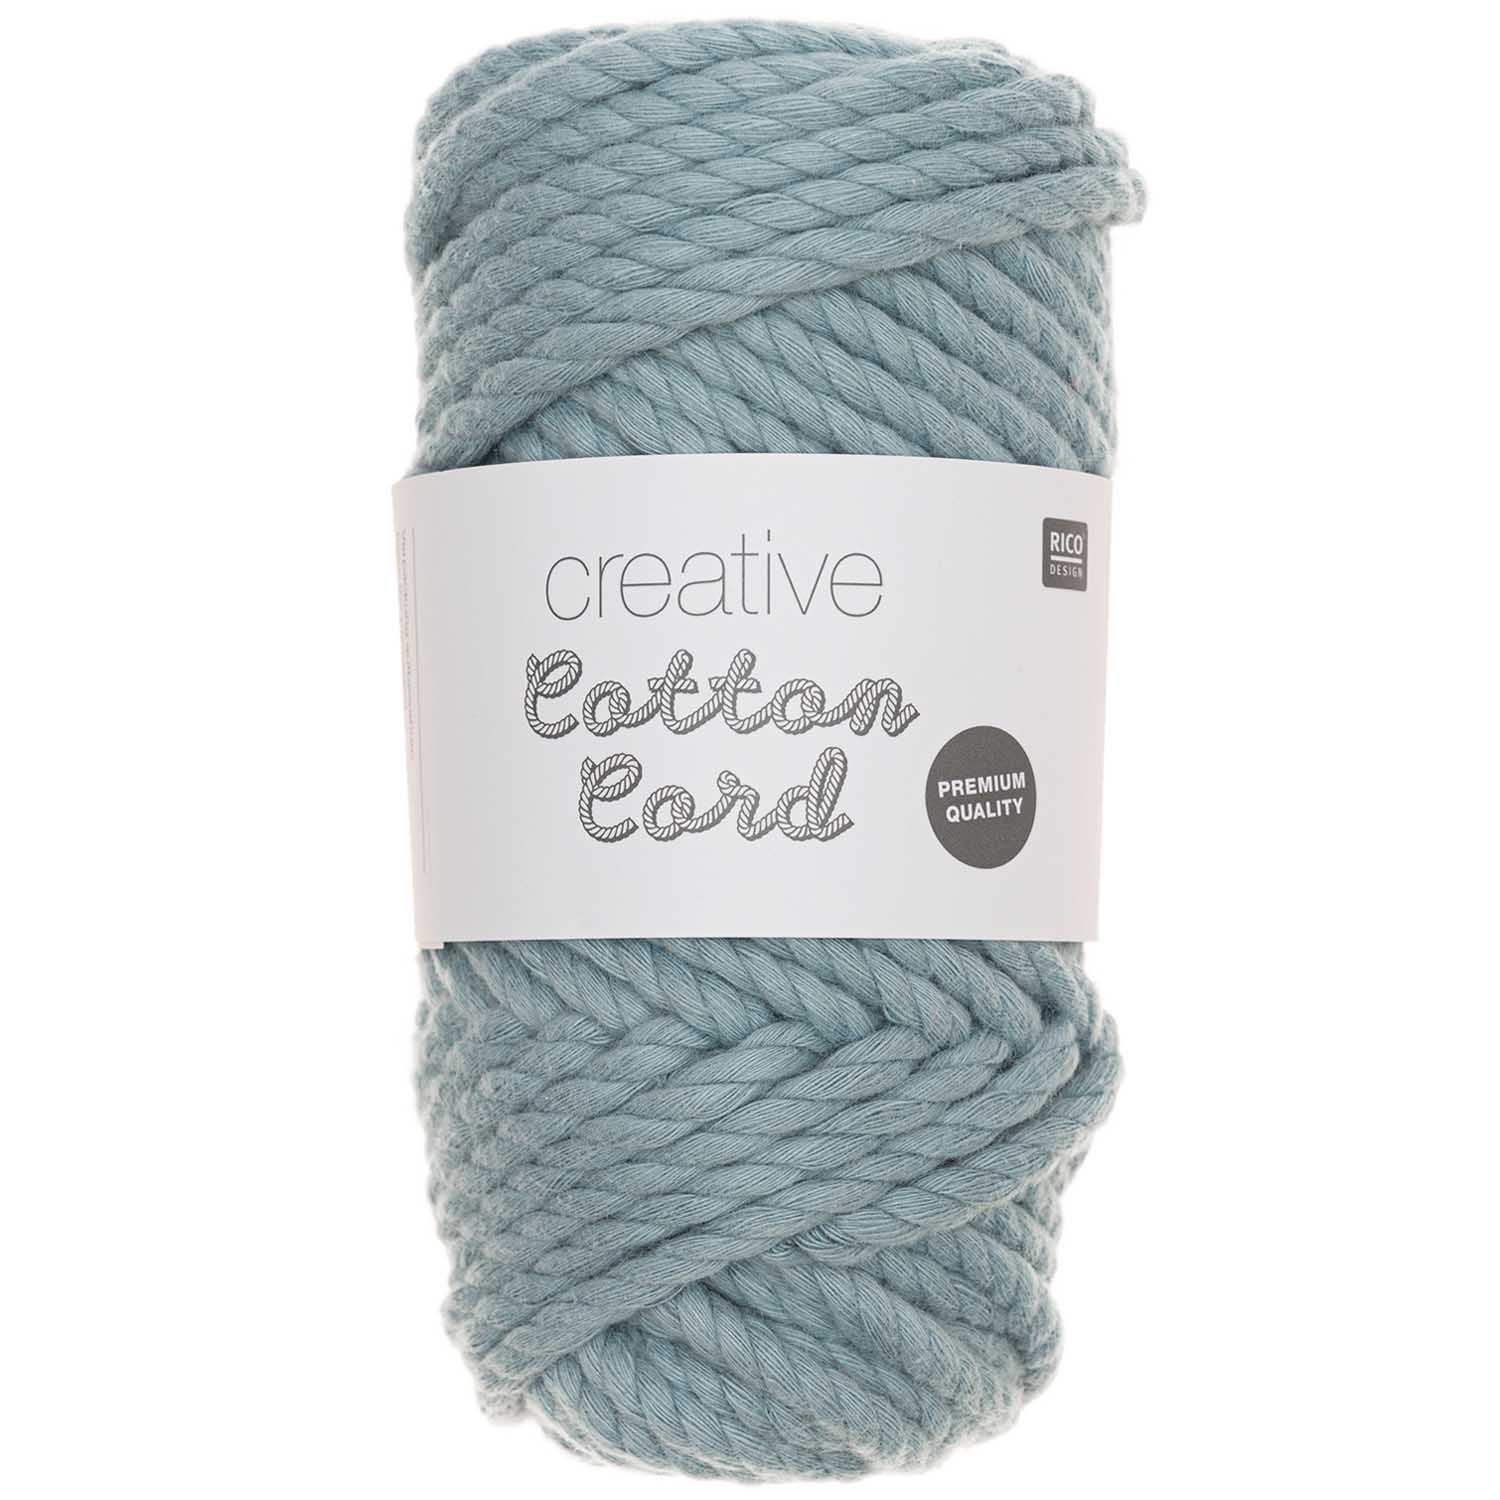 CREATIVE COTTON CORD 130G 25M patina